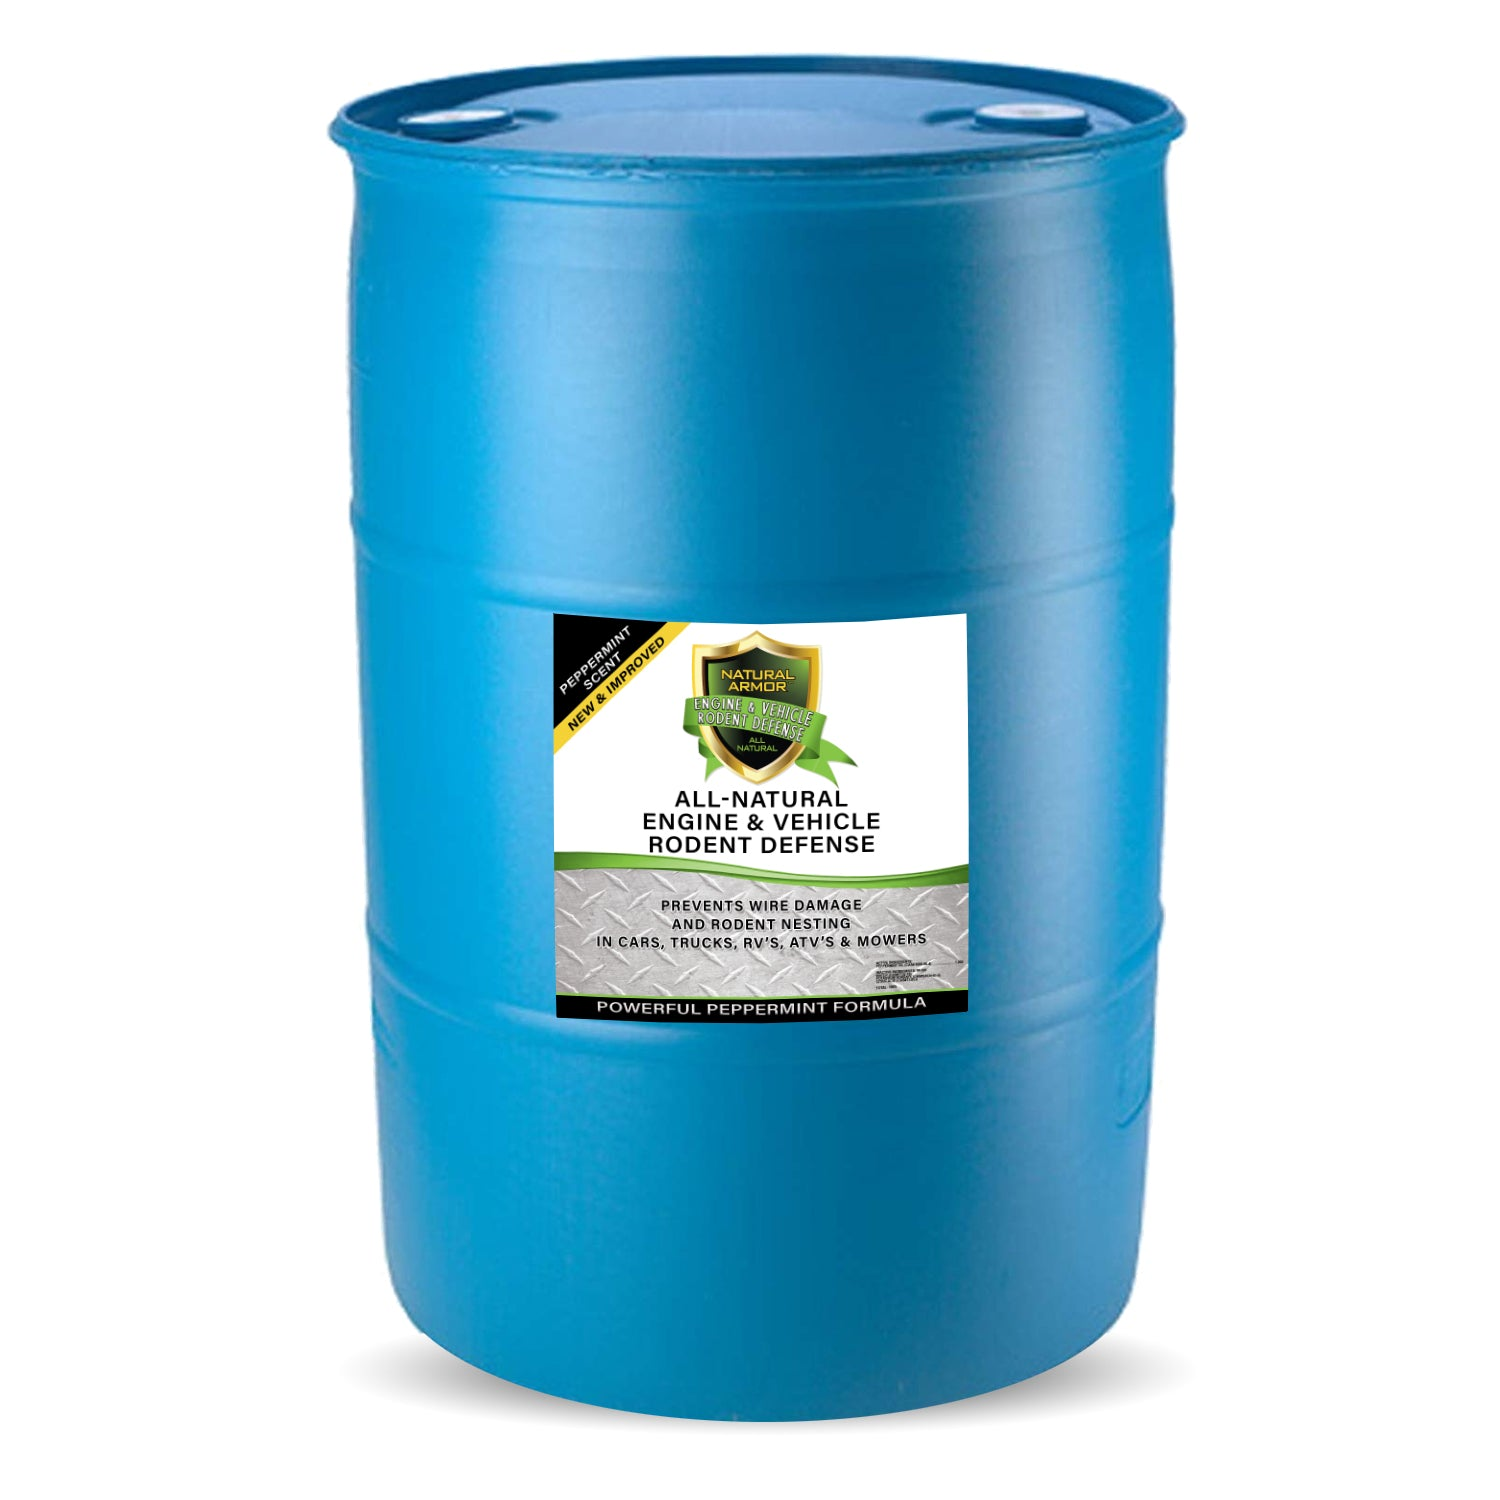 All-Natural Vehicle & Engine Protection - (1) 55 GALLON DRUM